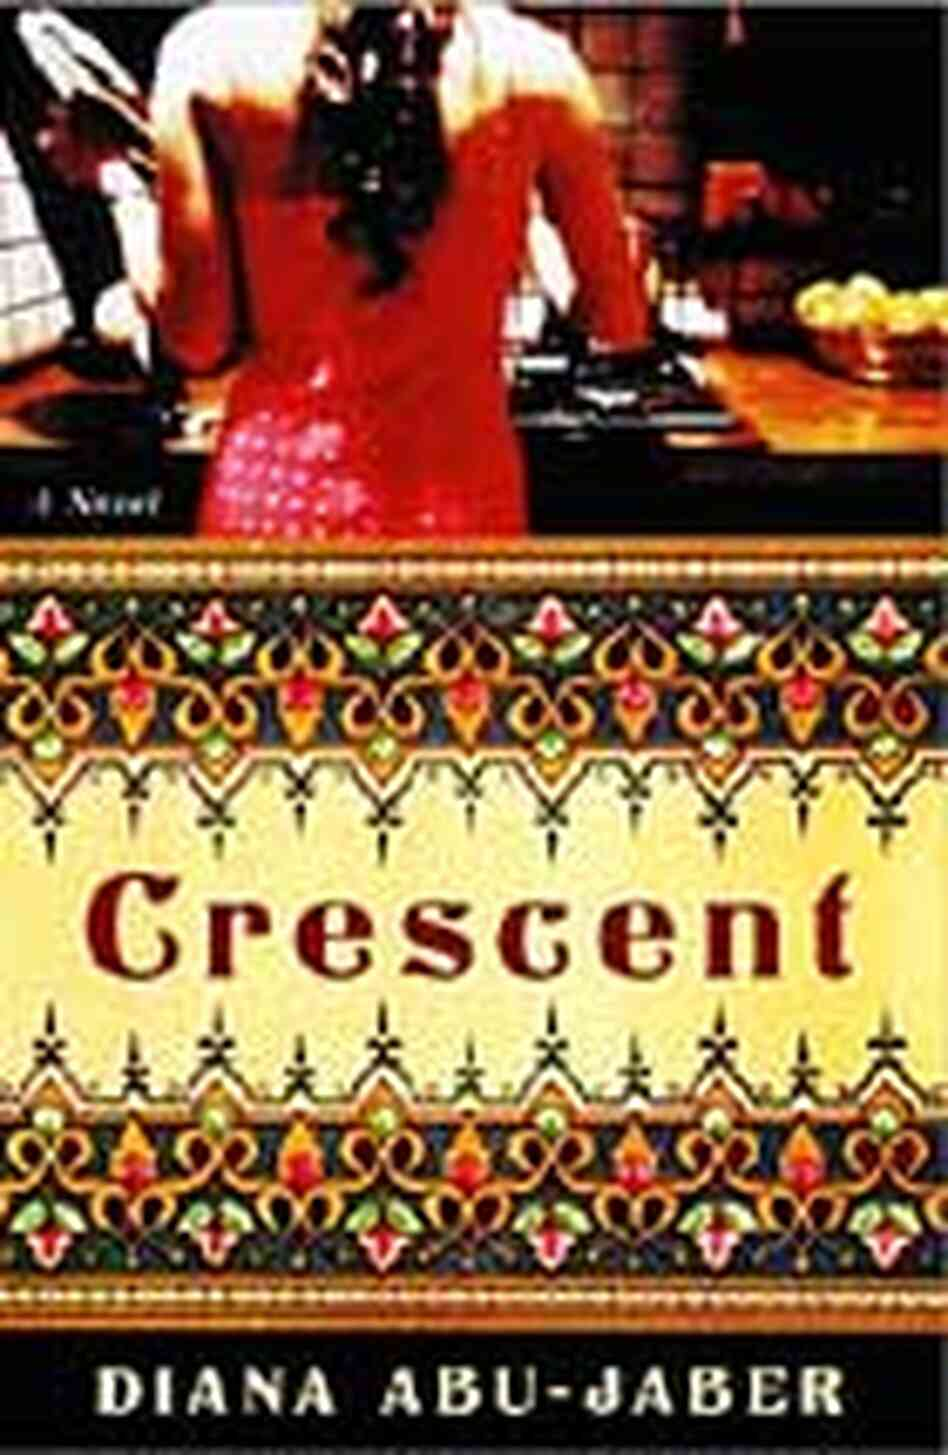 Book Cover of 'Crescent'